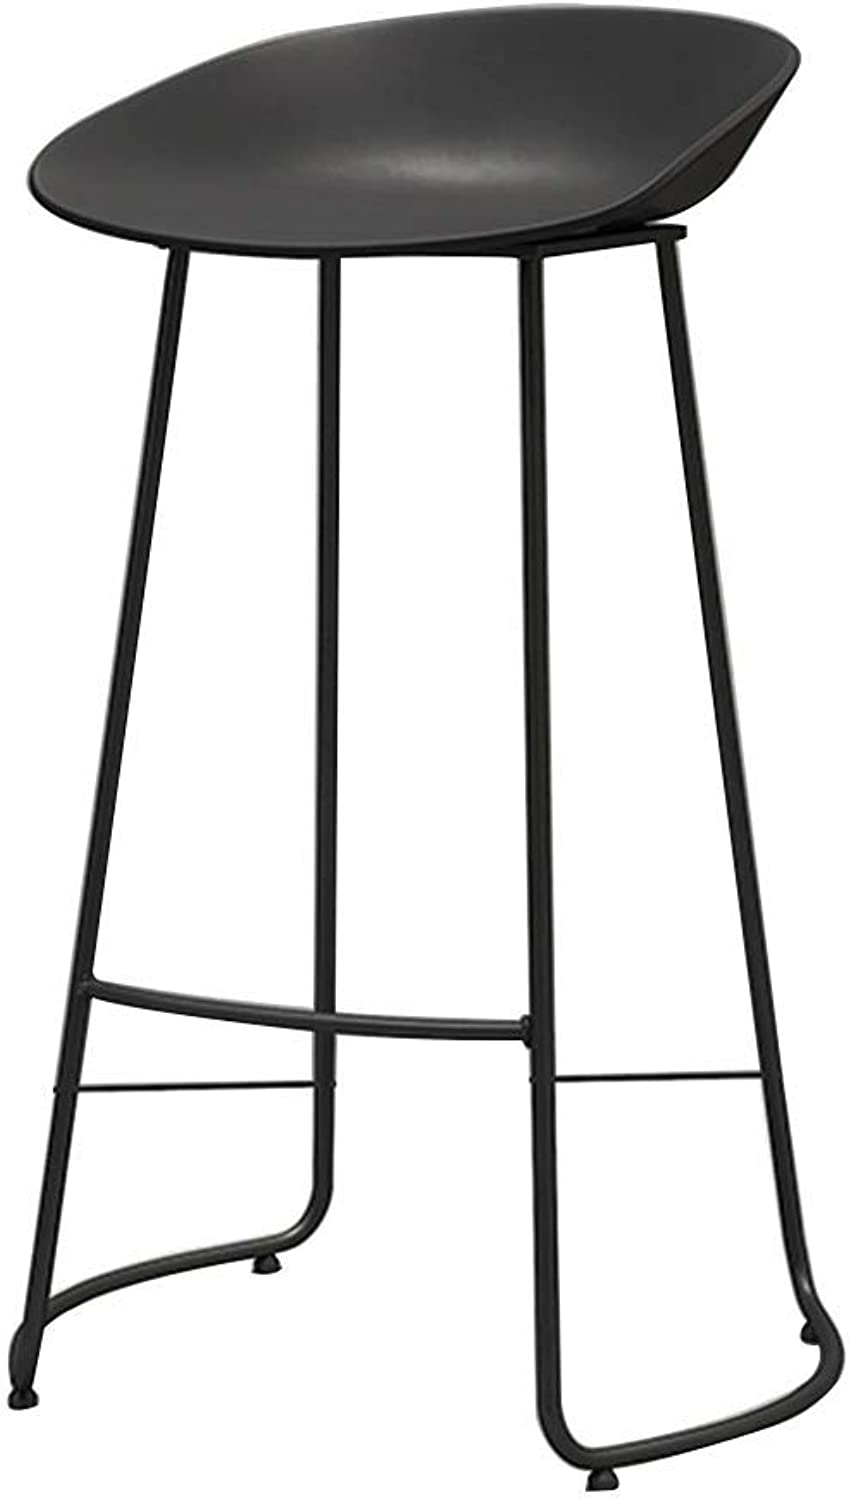 Iron Nordic Fashion Bar Stool Chair Home Kitchen Casual Cafe Front Desk Bar Stool Bar Cafe HENGXIAO (color   Black)